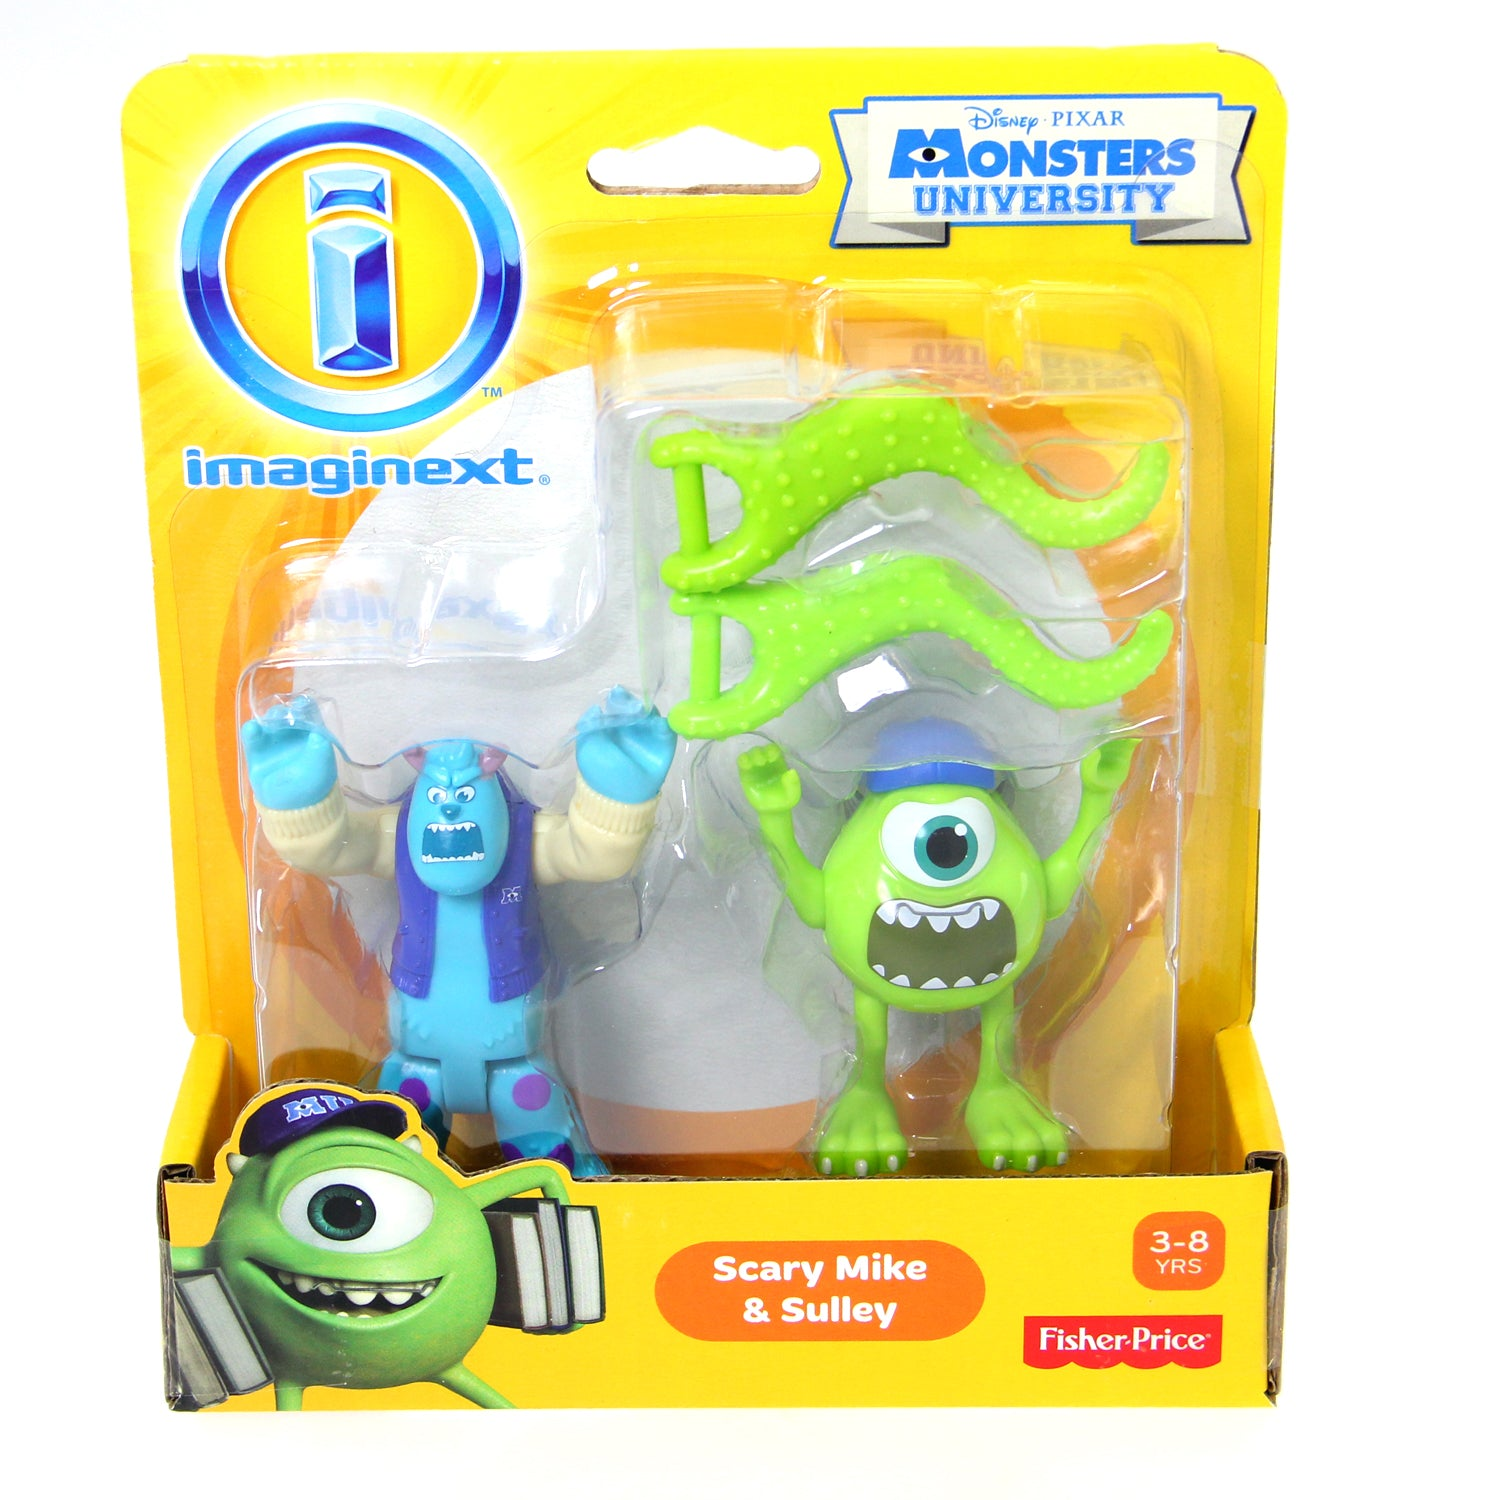 Monsters University Toys - Imaginext Scary Mike & Sully